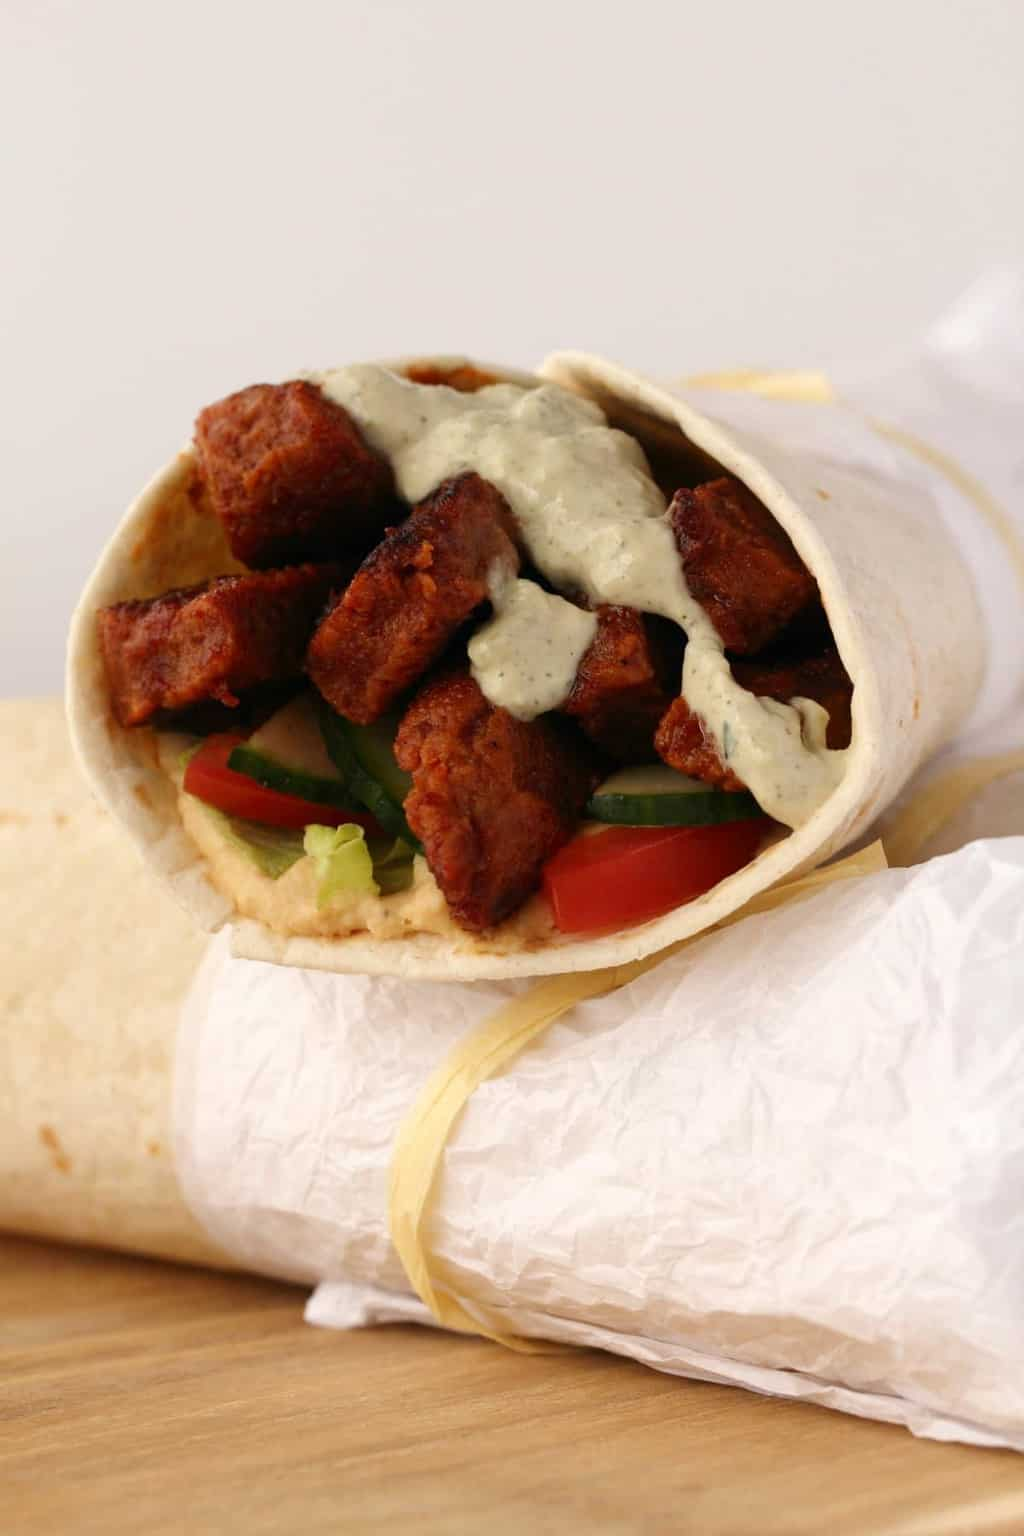 Vegan Shawarma stuffed with seitan and veggies and topped with vegan tzatziki